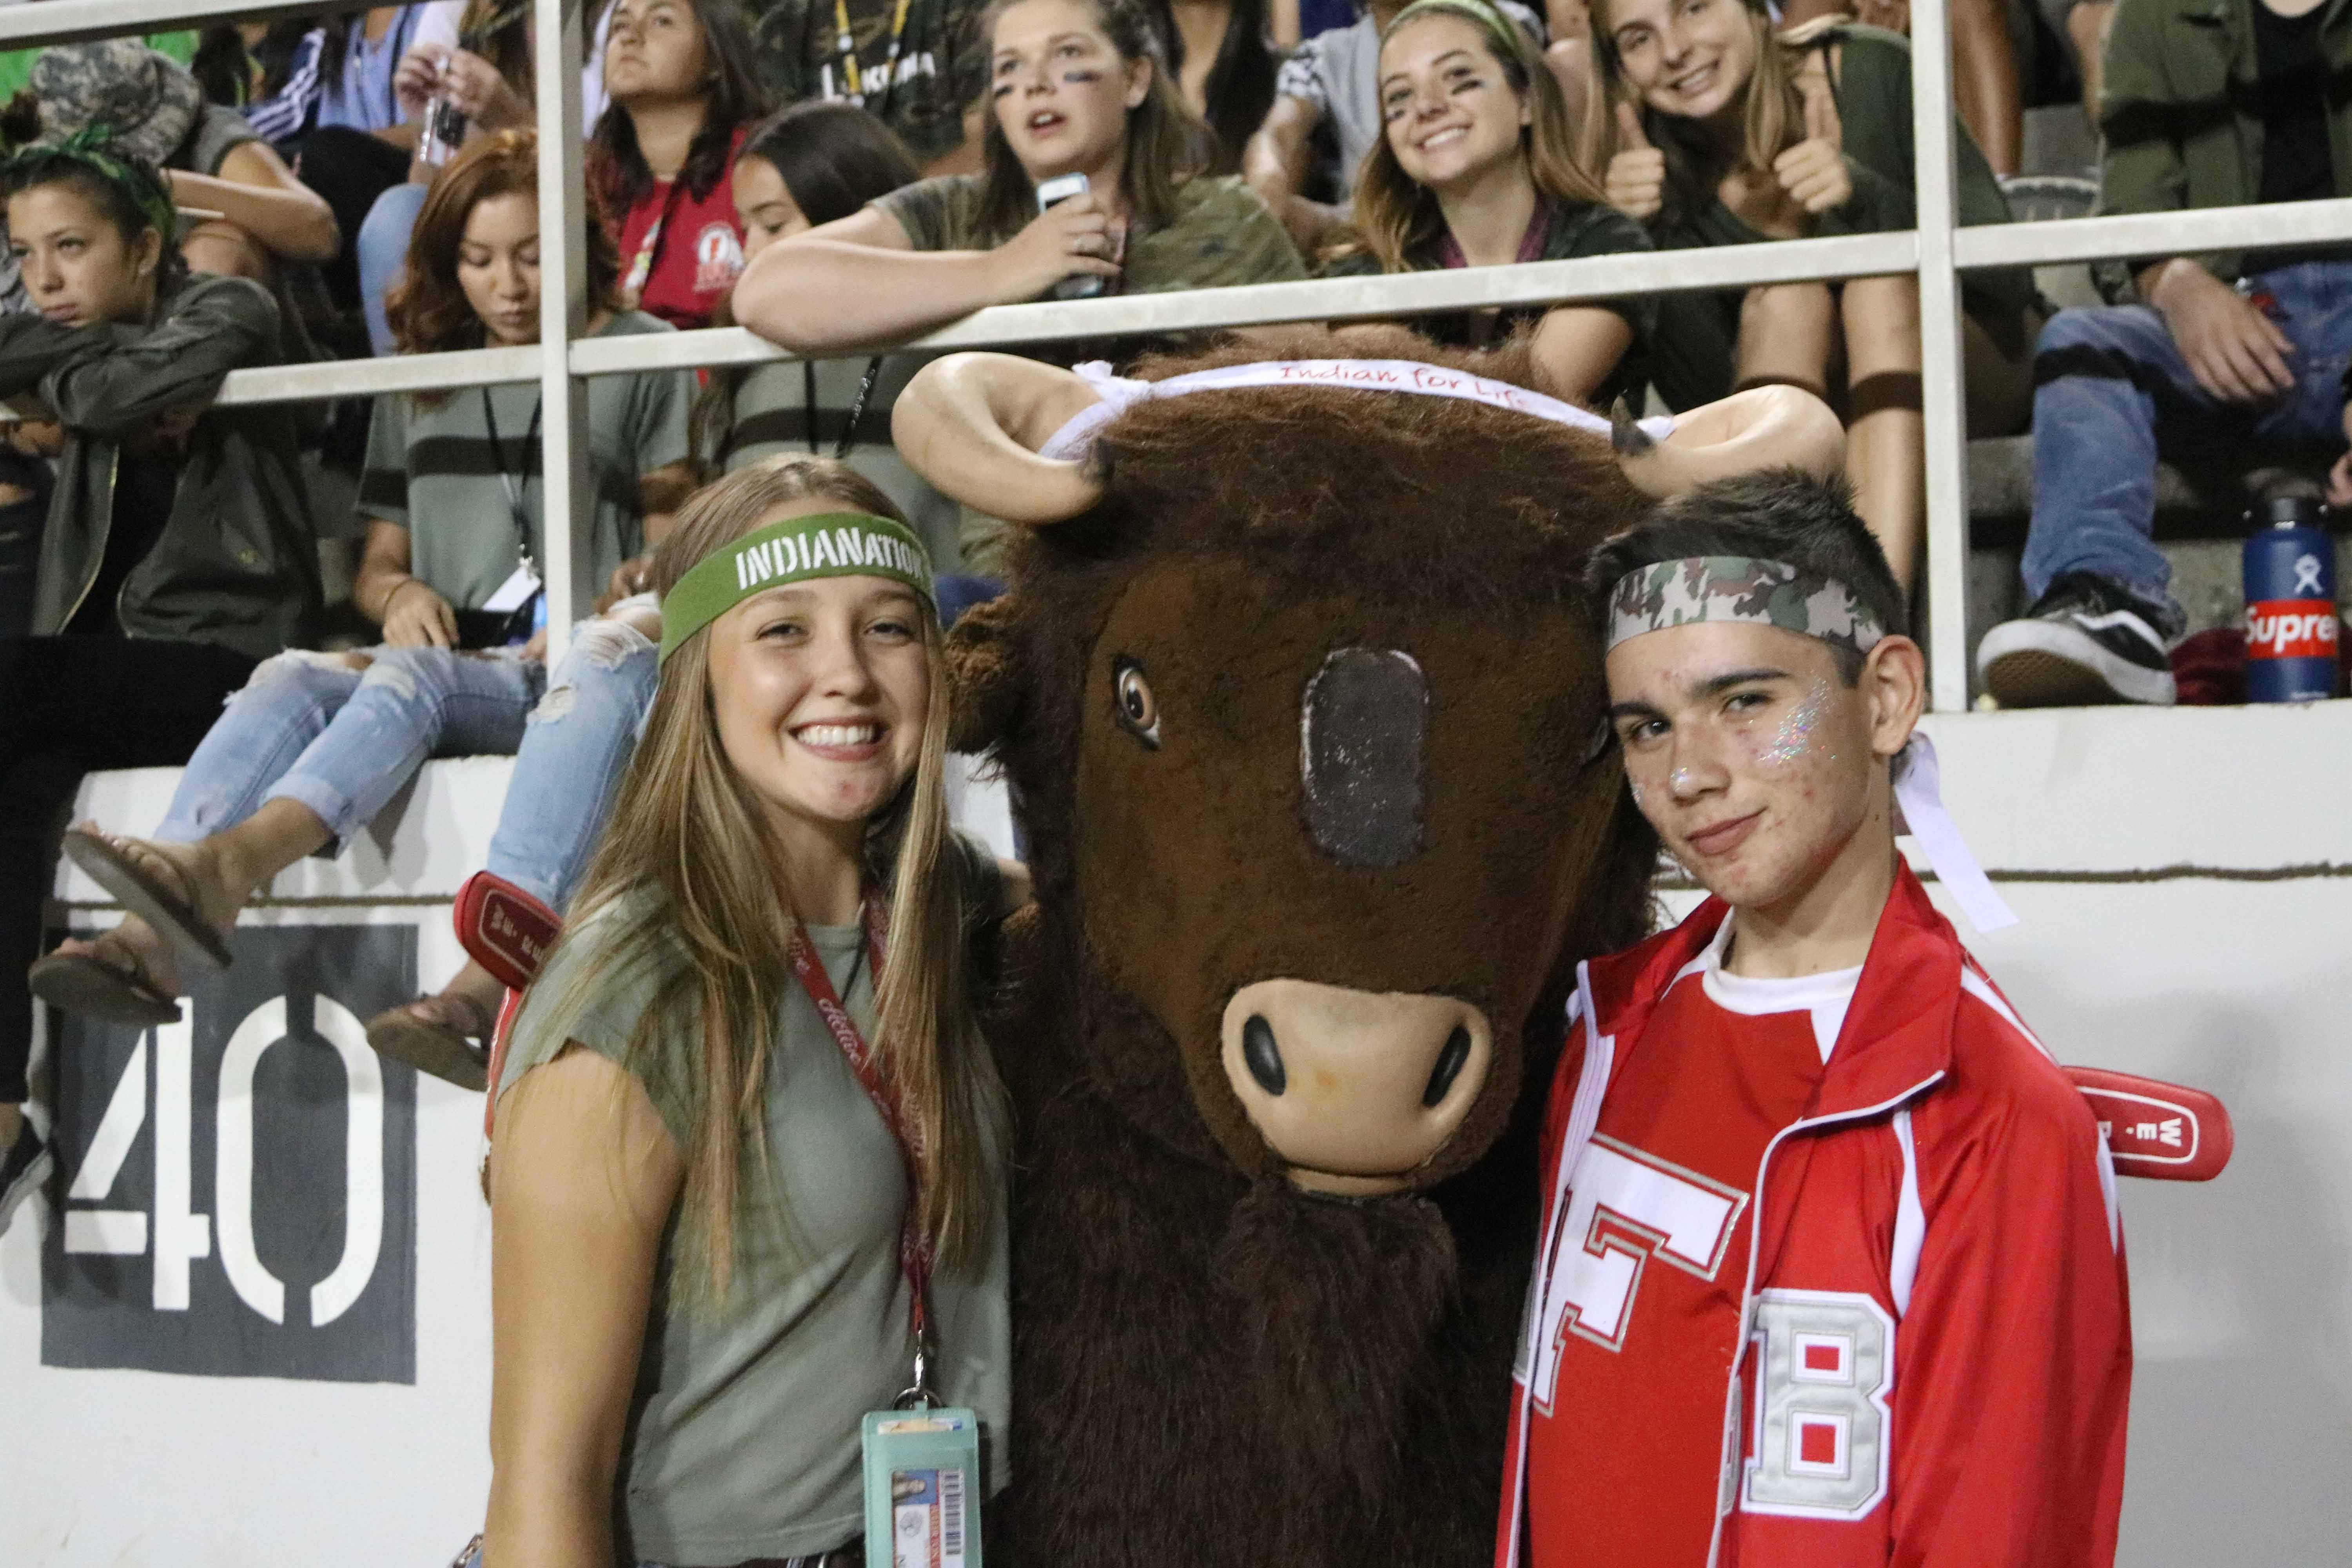 Sophomores+Claire+Wright+%28Left%29+and+Logan+Manjarres+%28Right%29+pose+with+the+school+mascot%2C+Willy+Ug+the+Bufflo.+Photo+by+Emily+Caluya